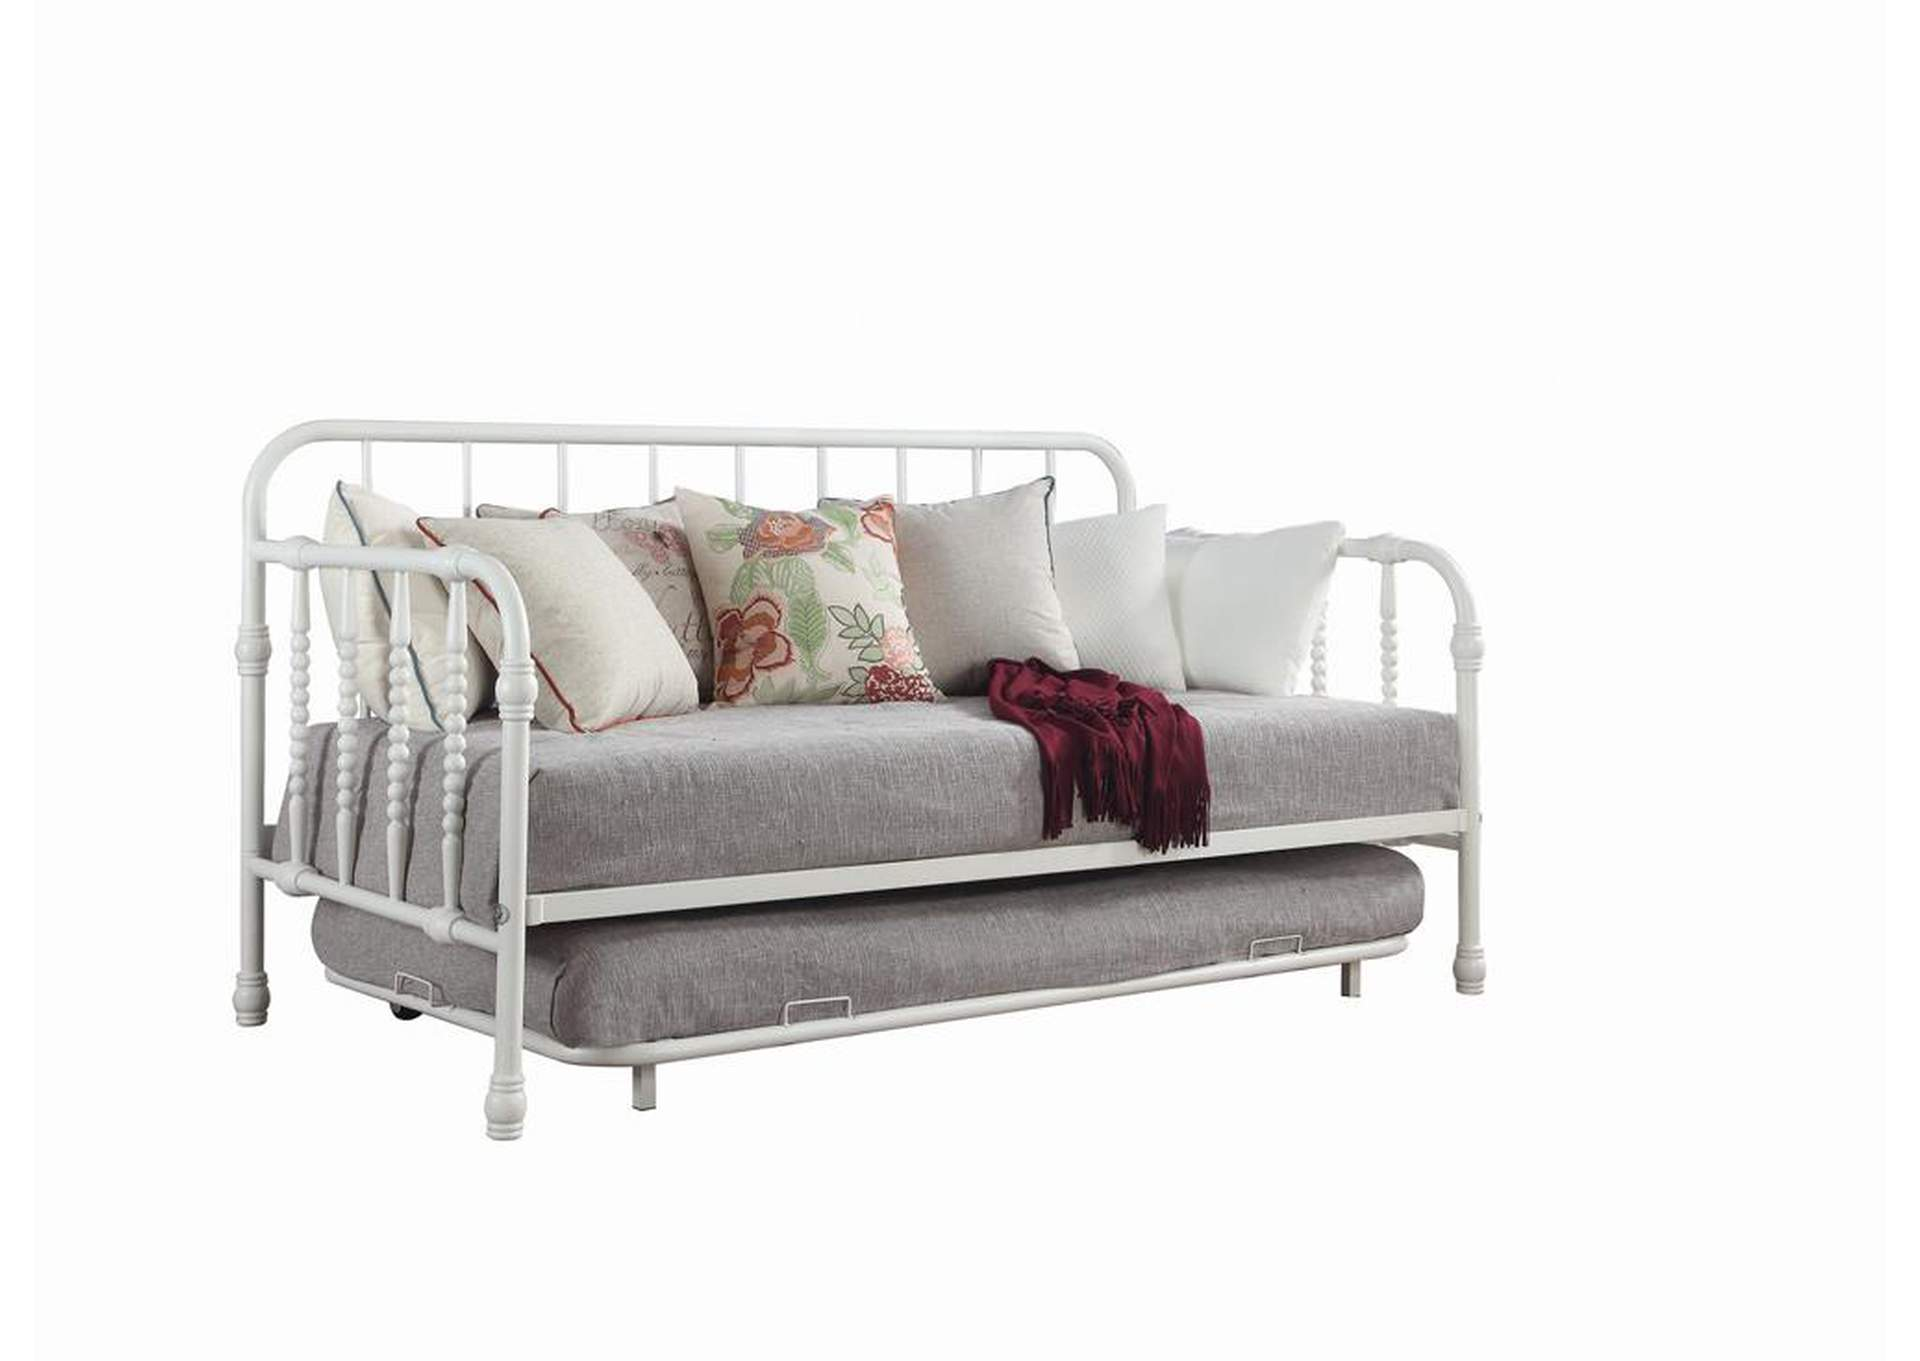 Mist Gray Traditional White Metal Daybed,Coaster Furniture